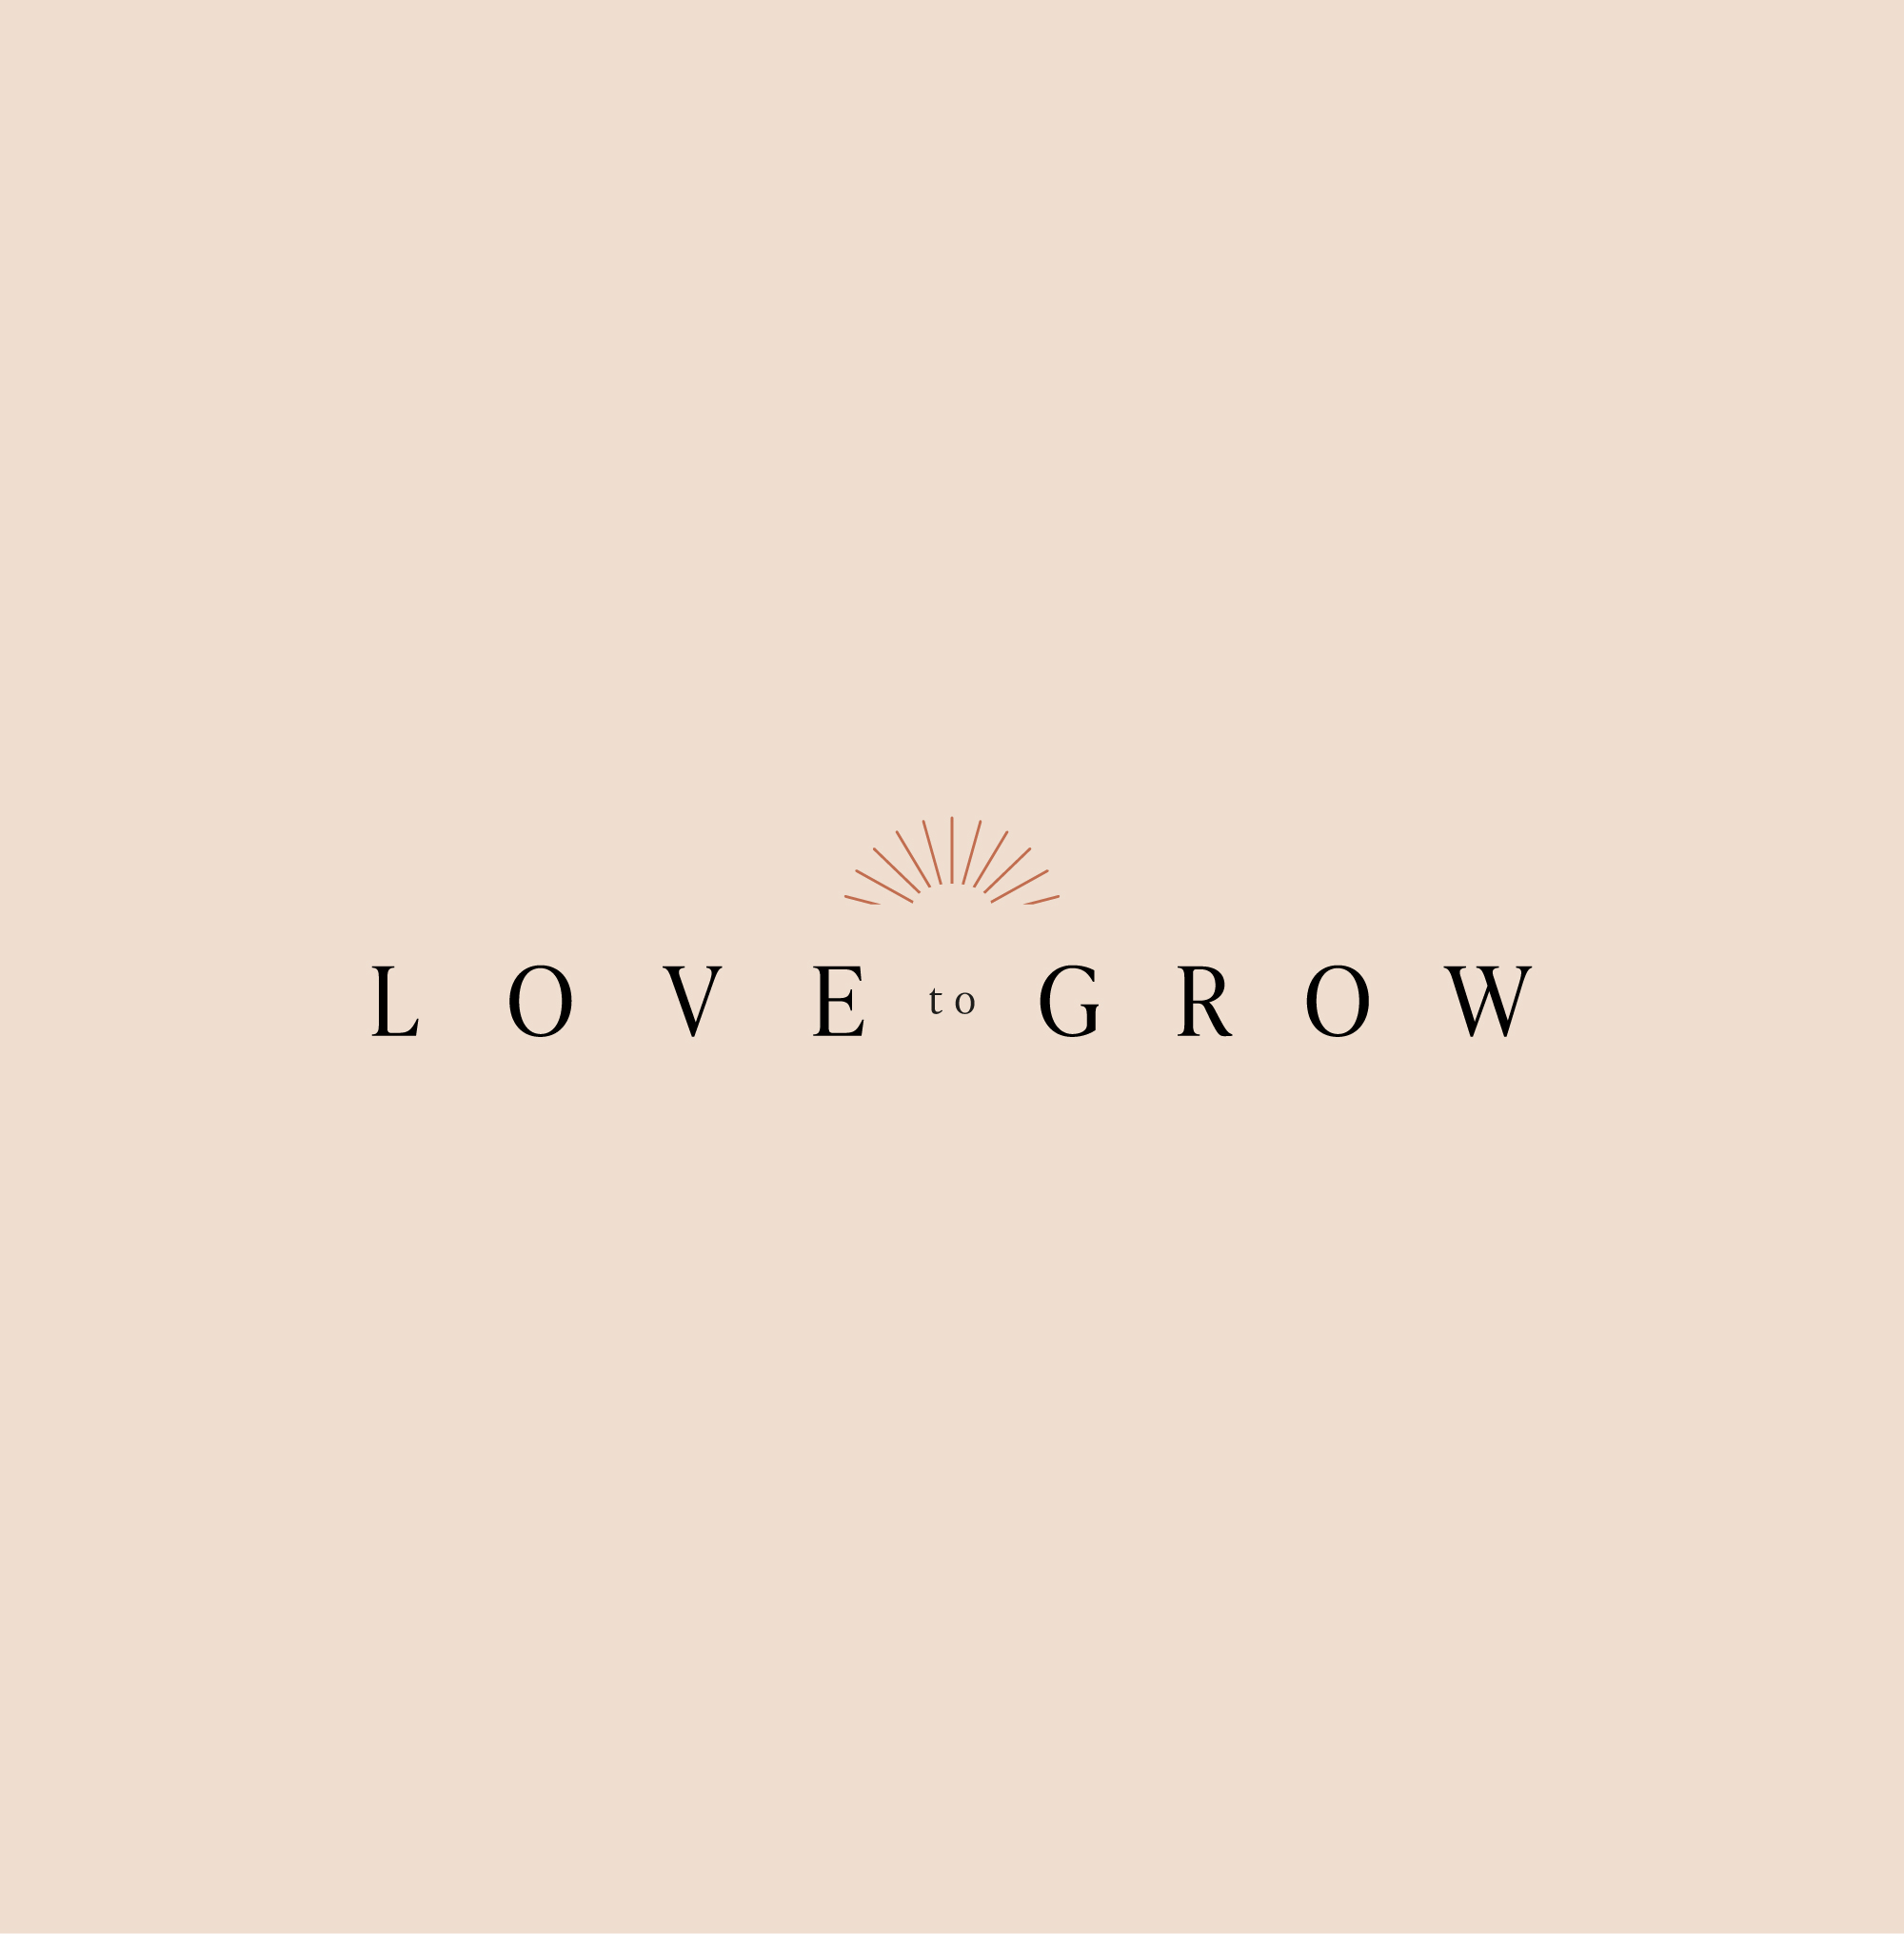 love to grow brand identity design by roos oosterbroek - draw studio